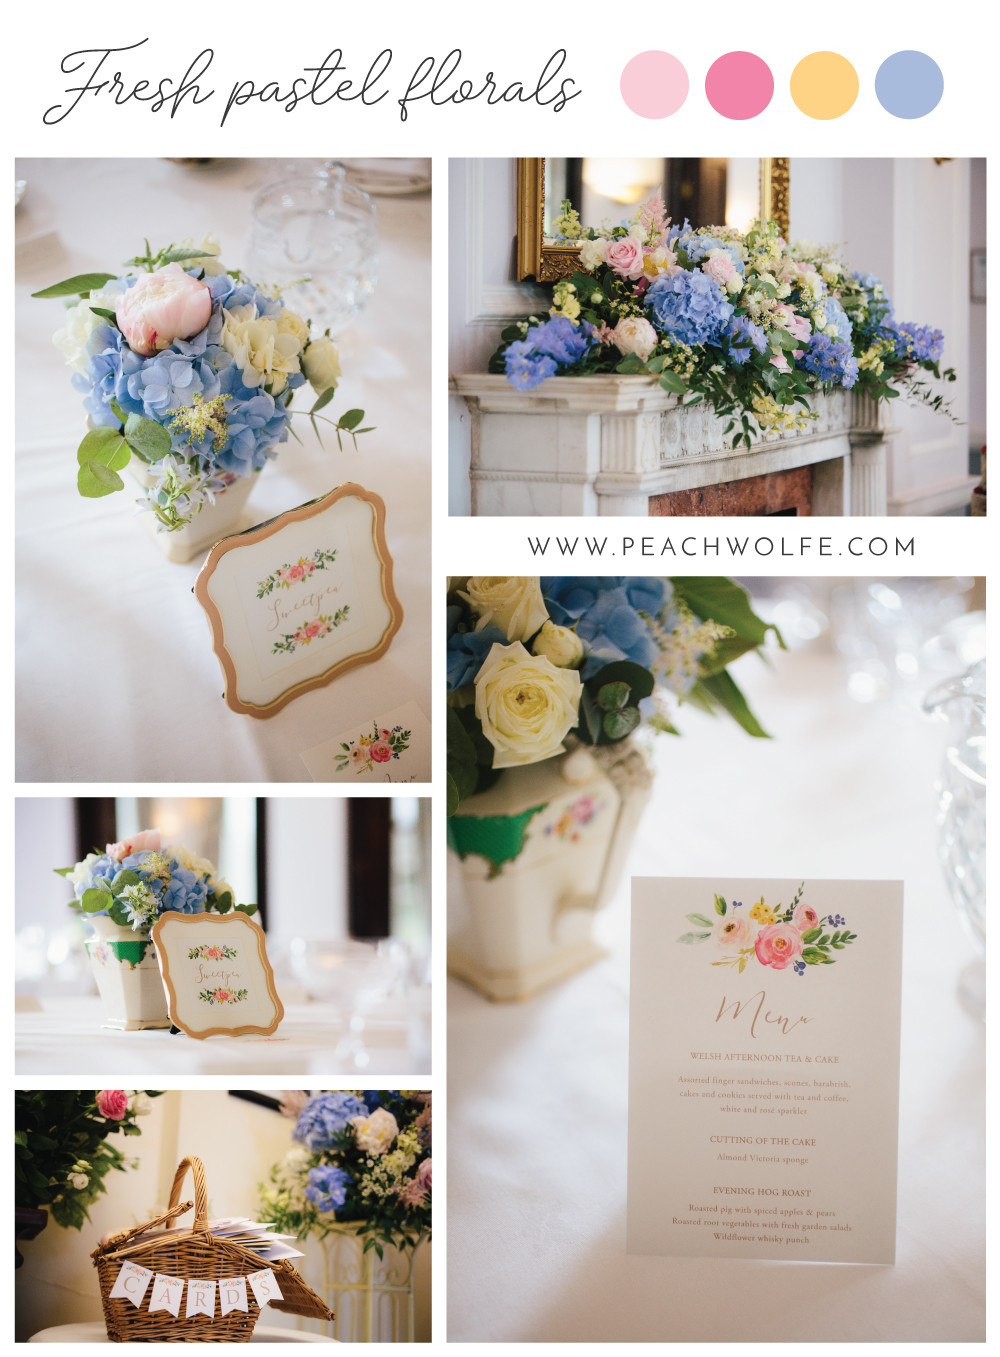 Fresh pastel wedding stationery, spring floral wedding stationery, frame table name card on the day stationery